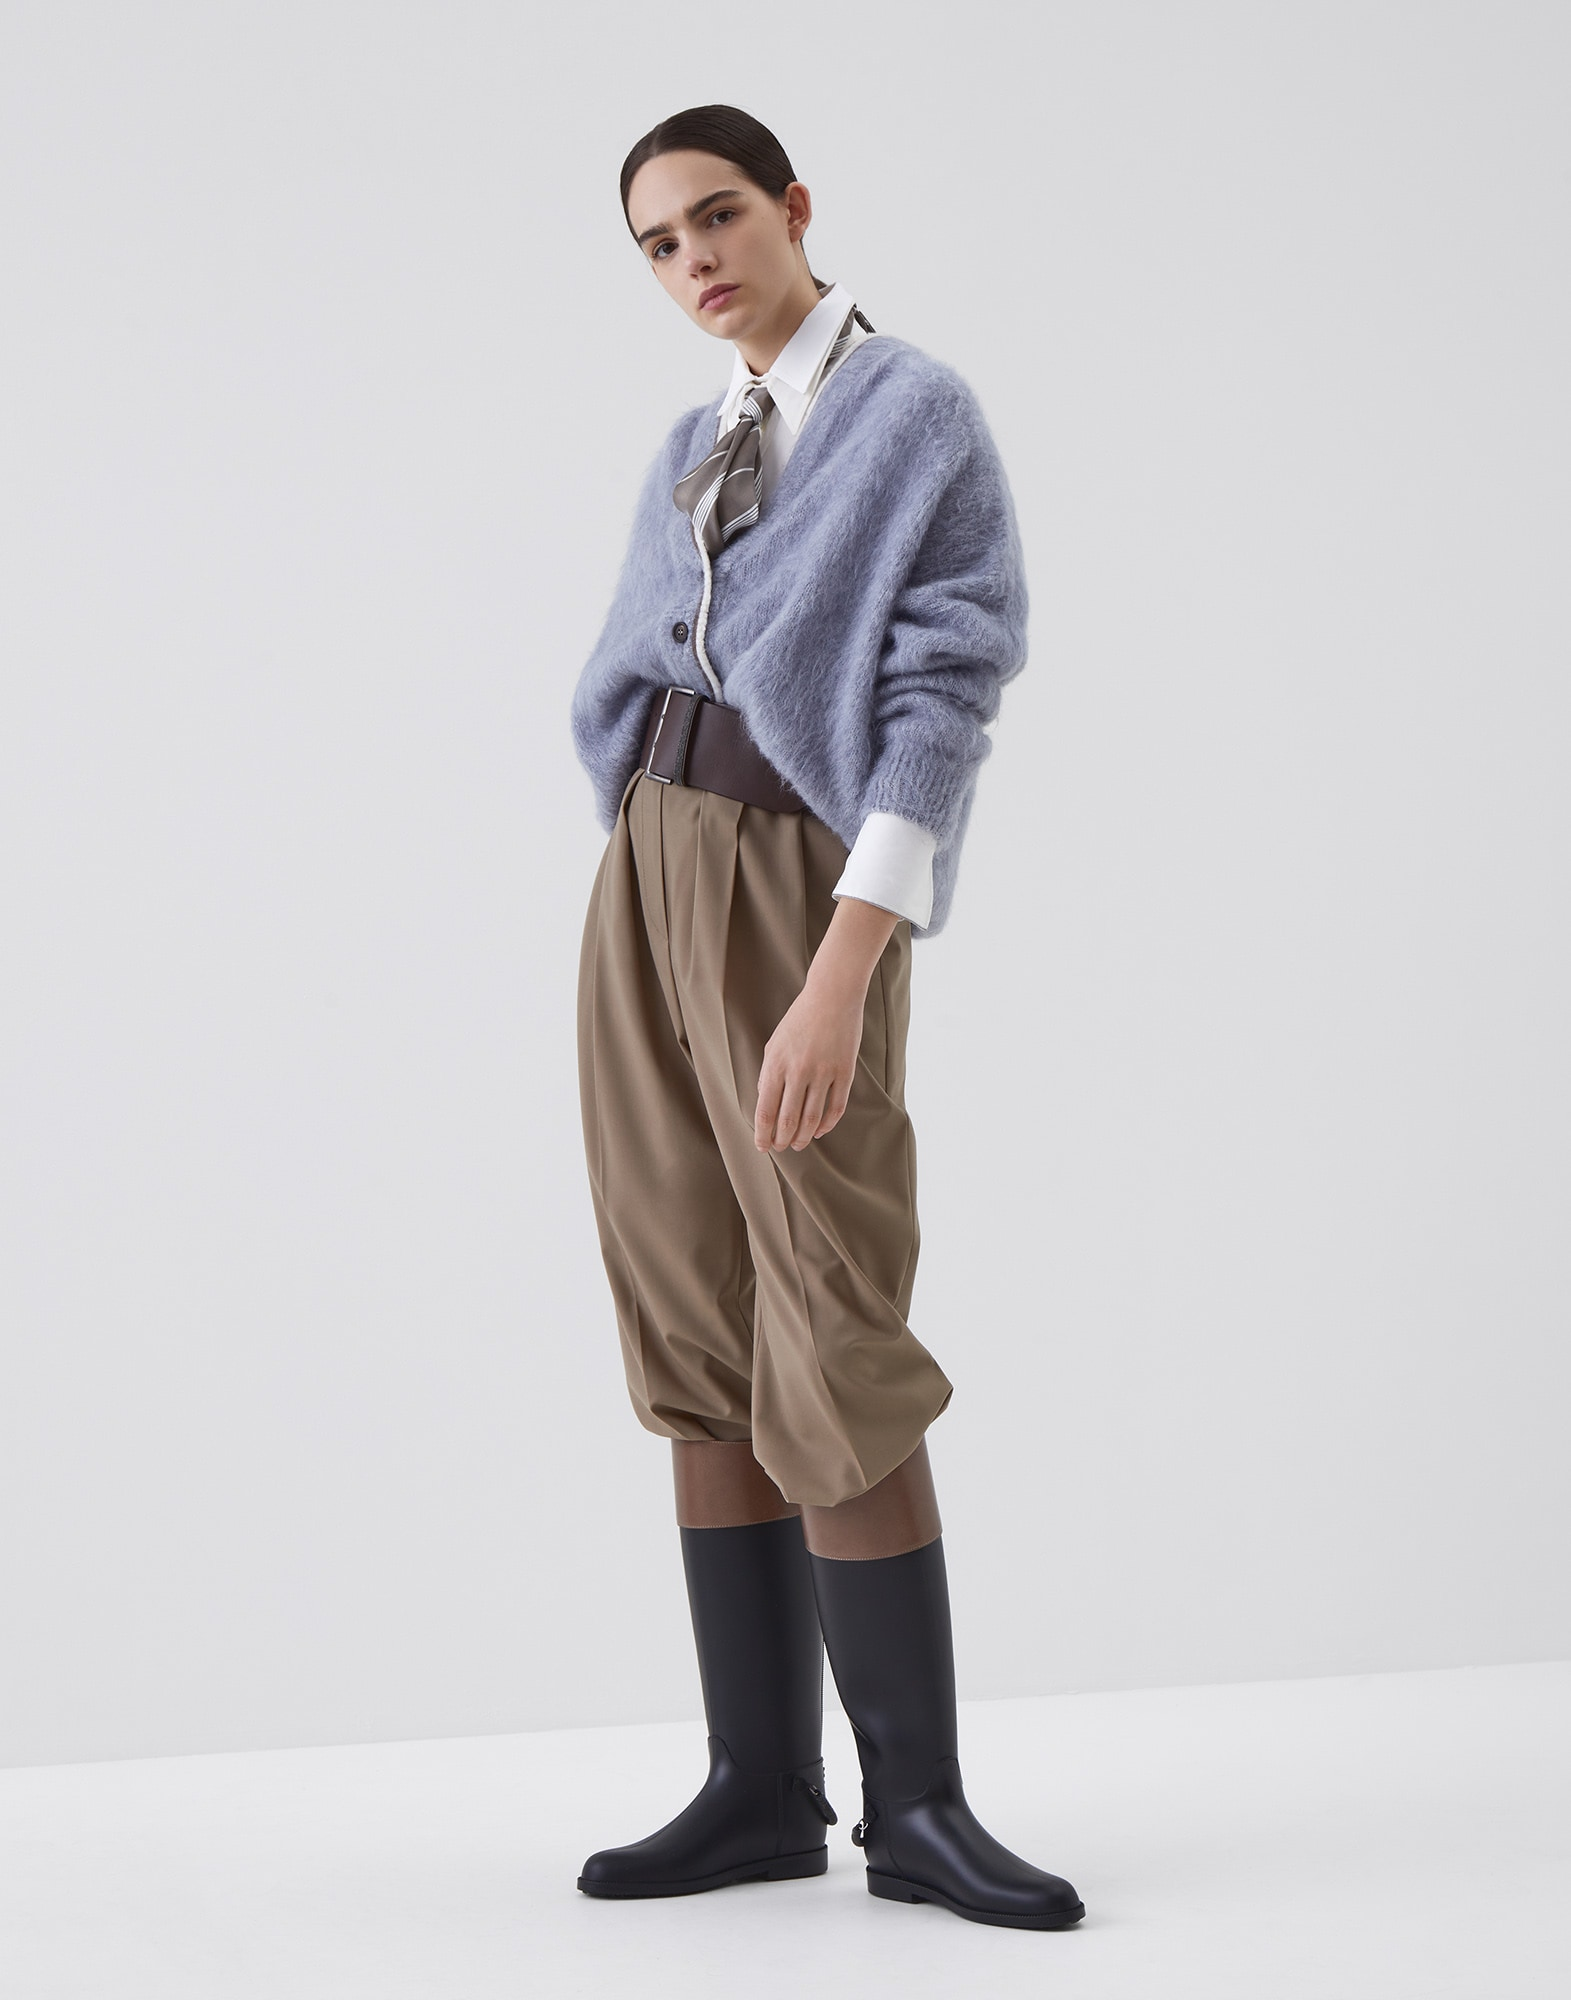 Cardigan Sky Blue Woman 3 - Brunello Cucinelli